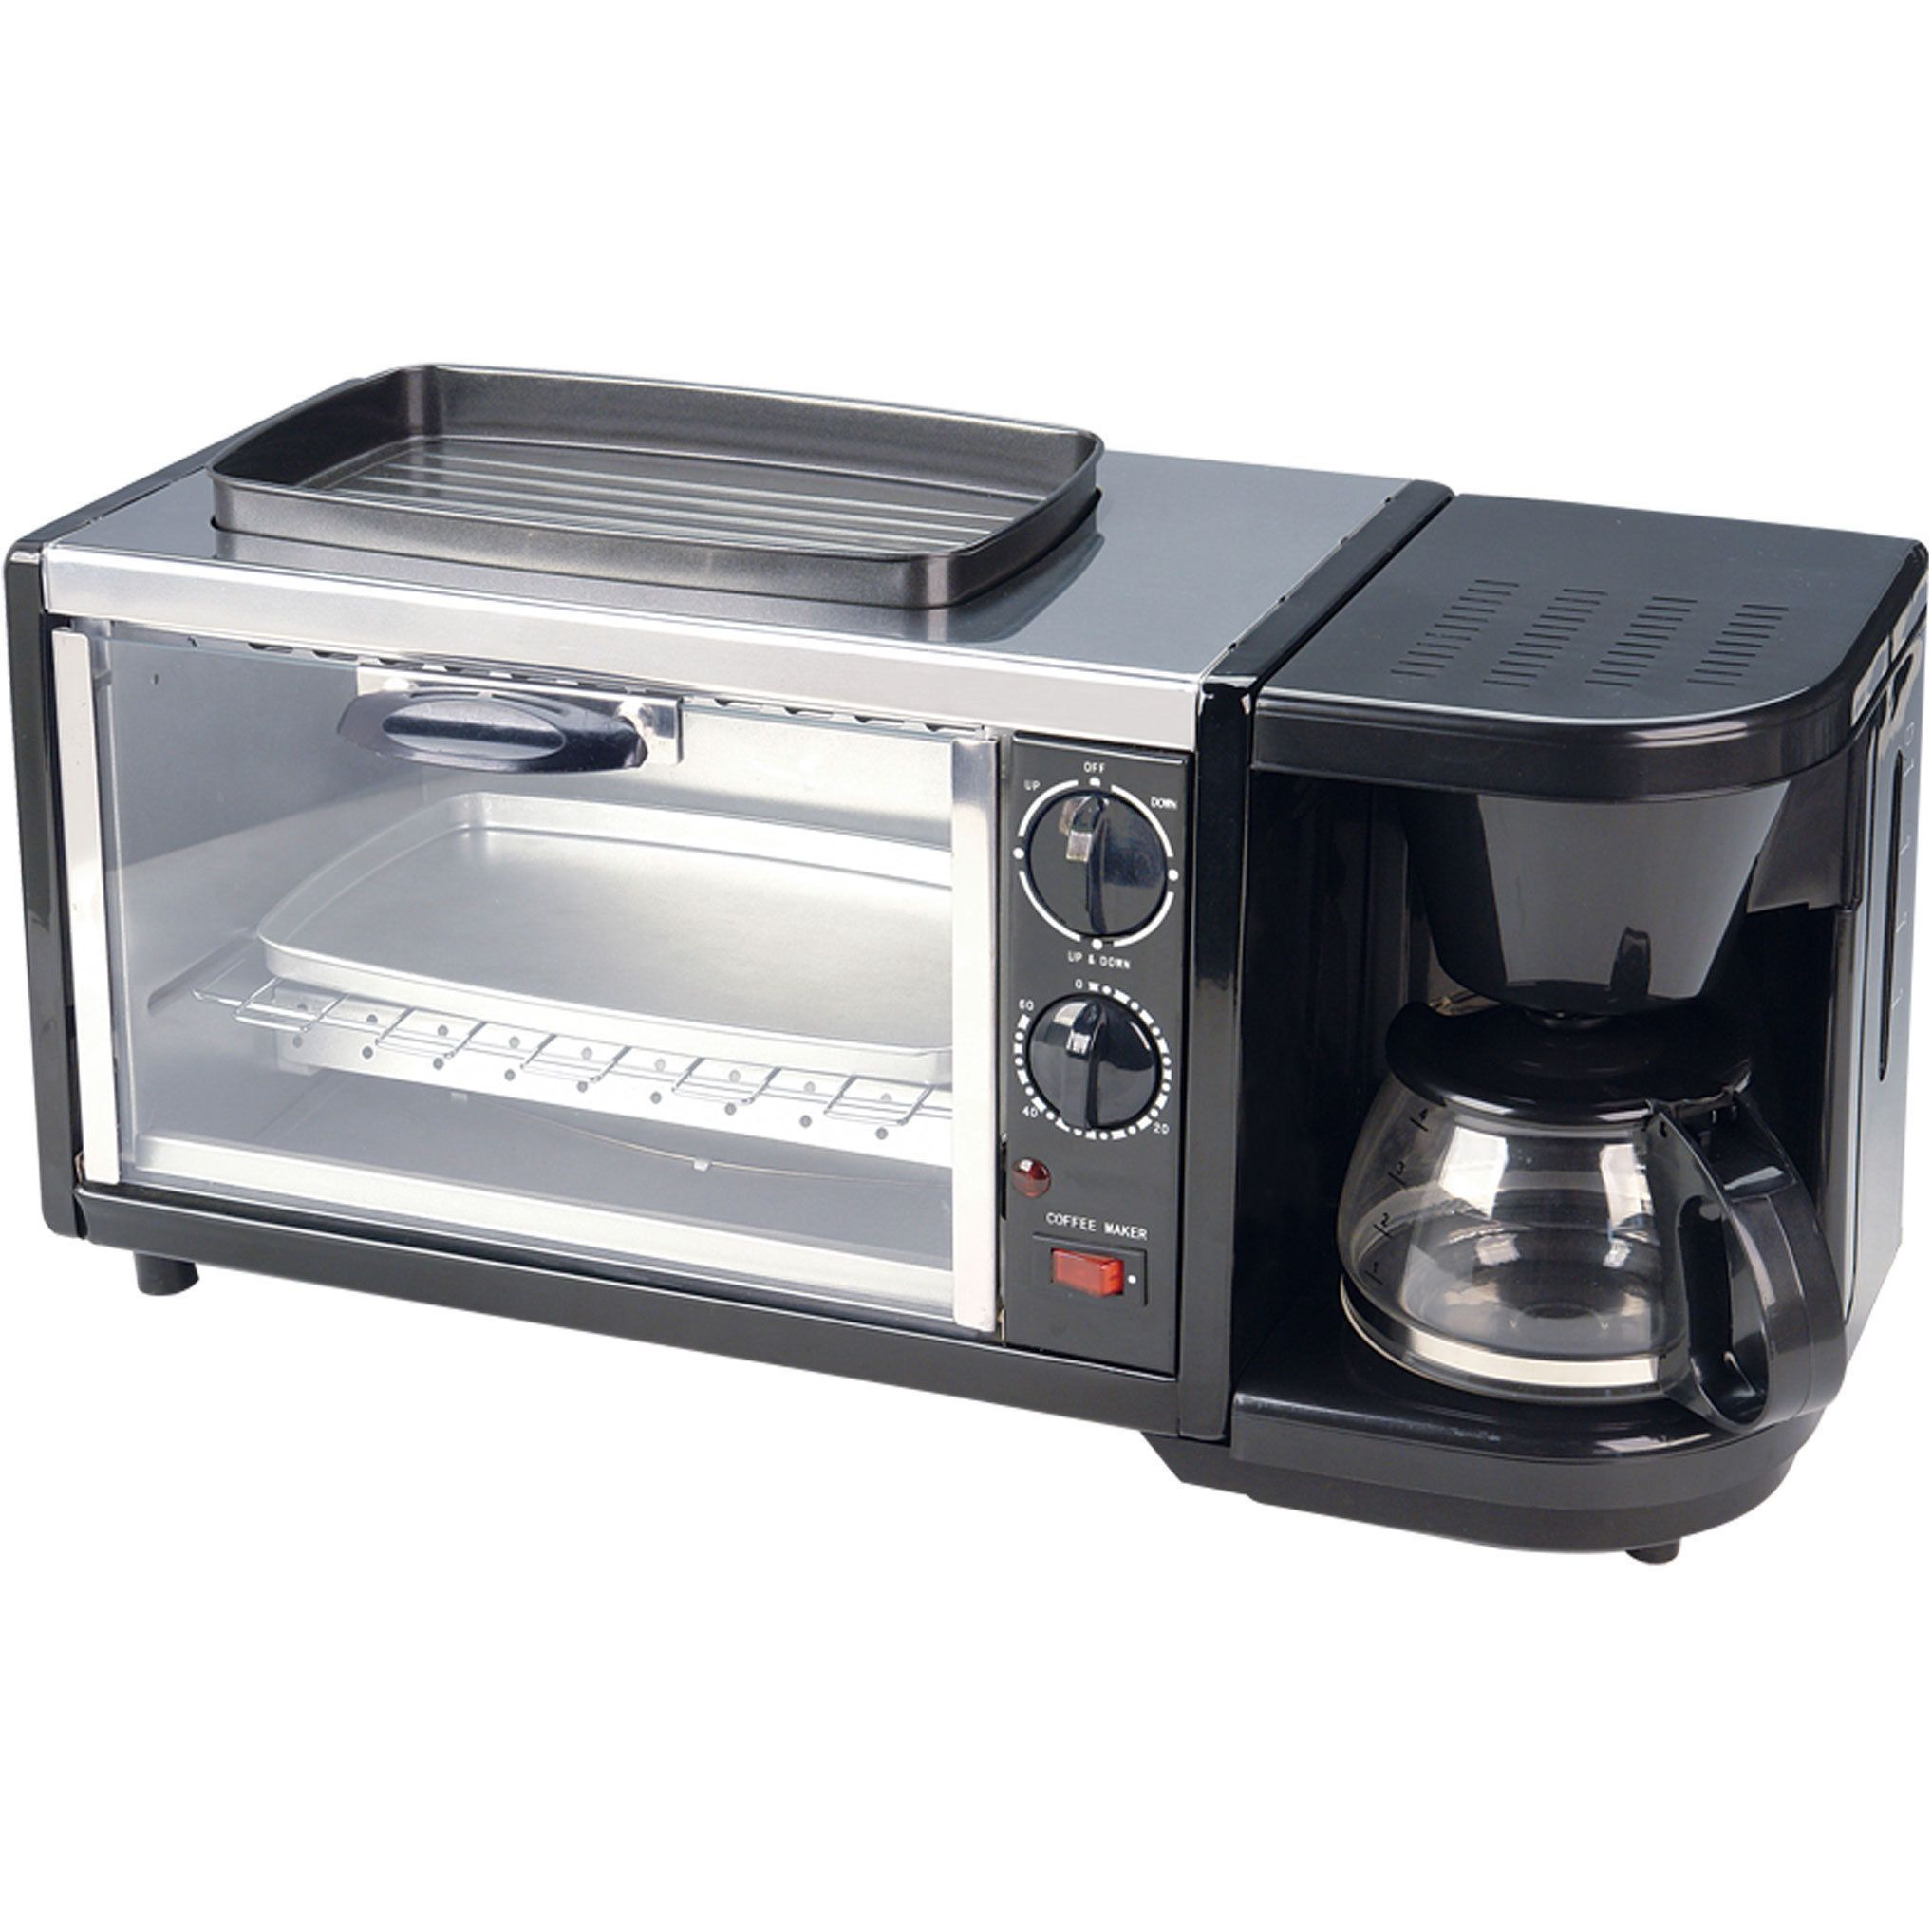 Spt 3 In 1 Breakfast Maker Combines All The Necessities Into One Toaster Oven Coffee And Top Griddle This Is Perfect Compact